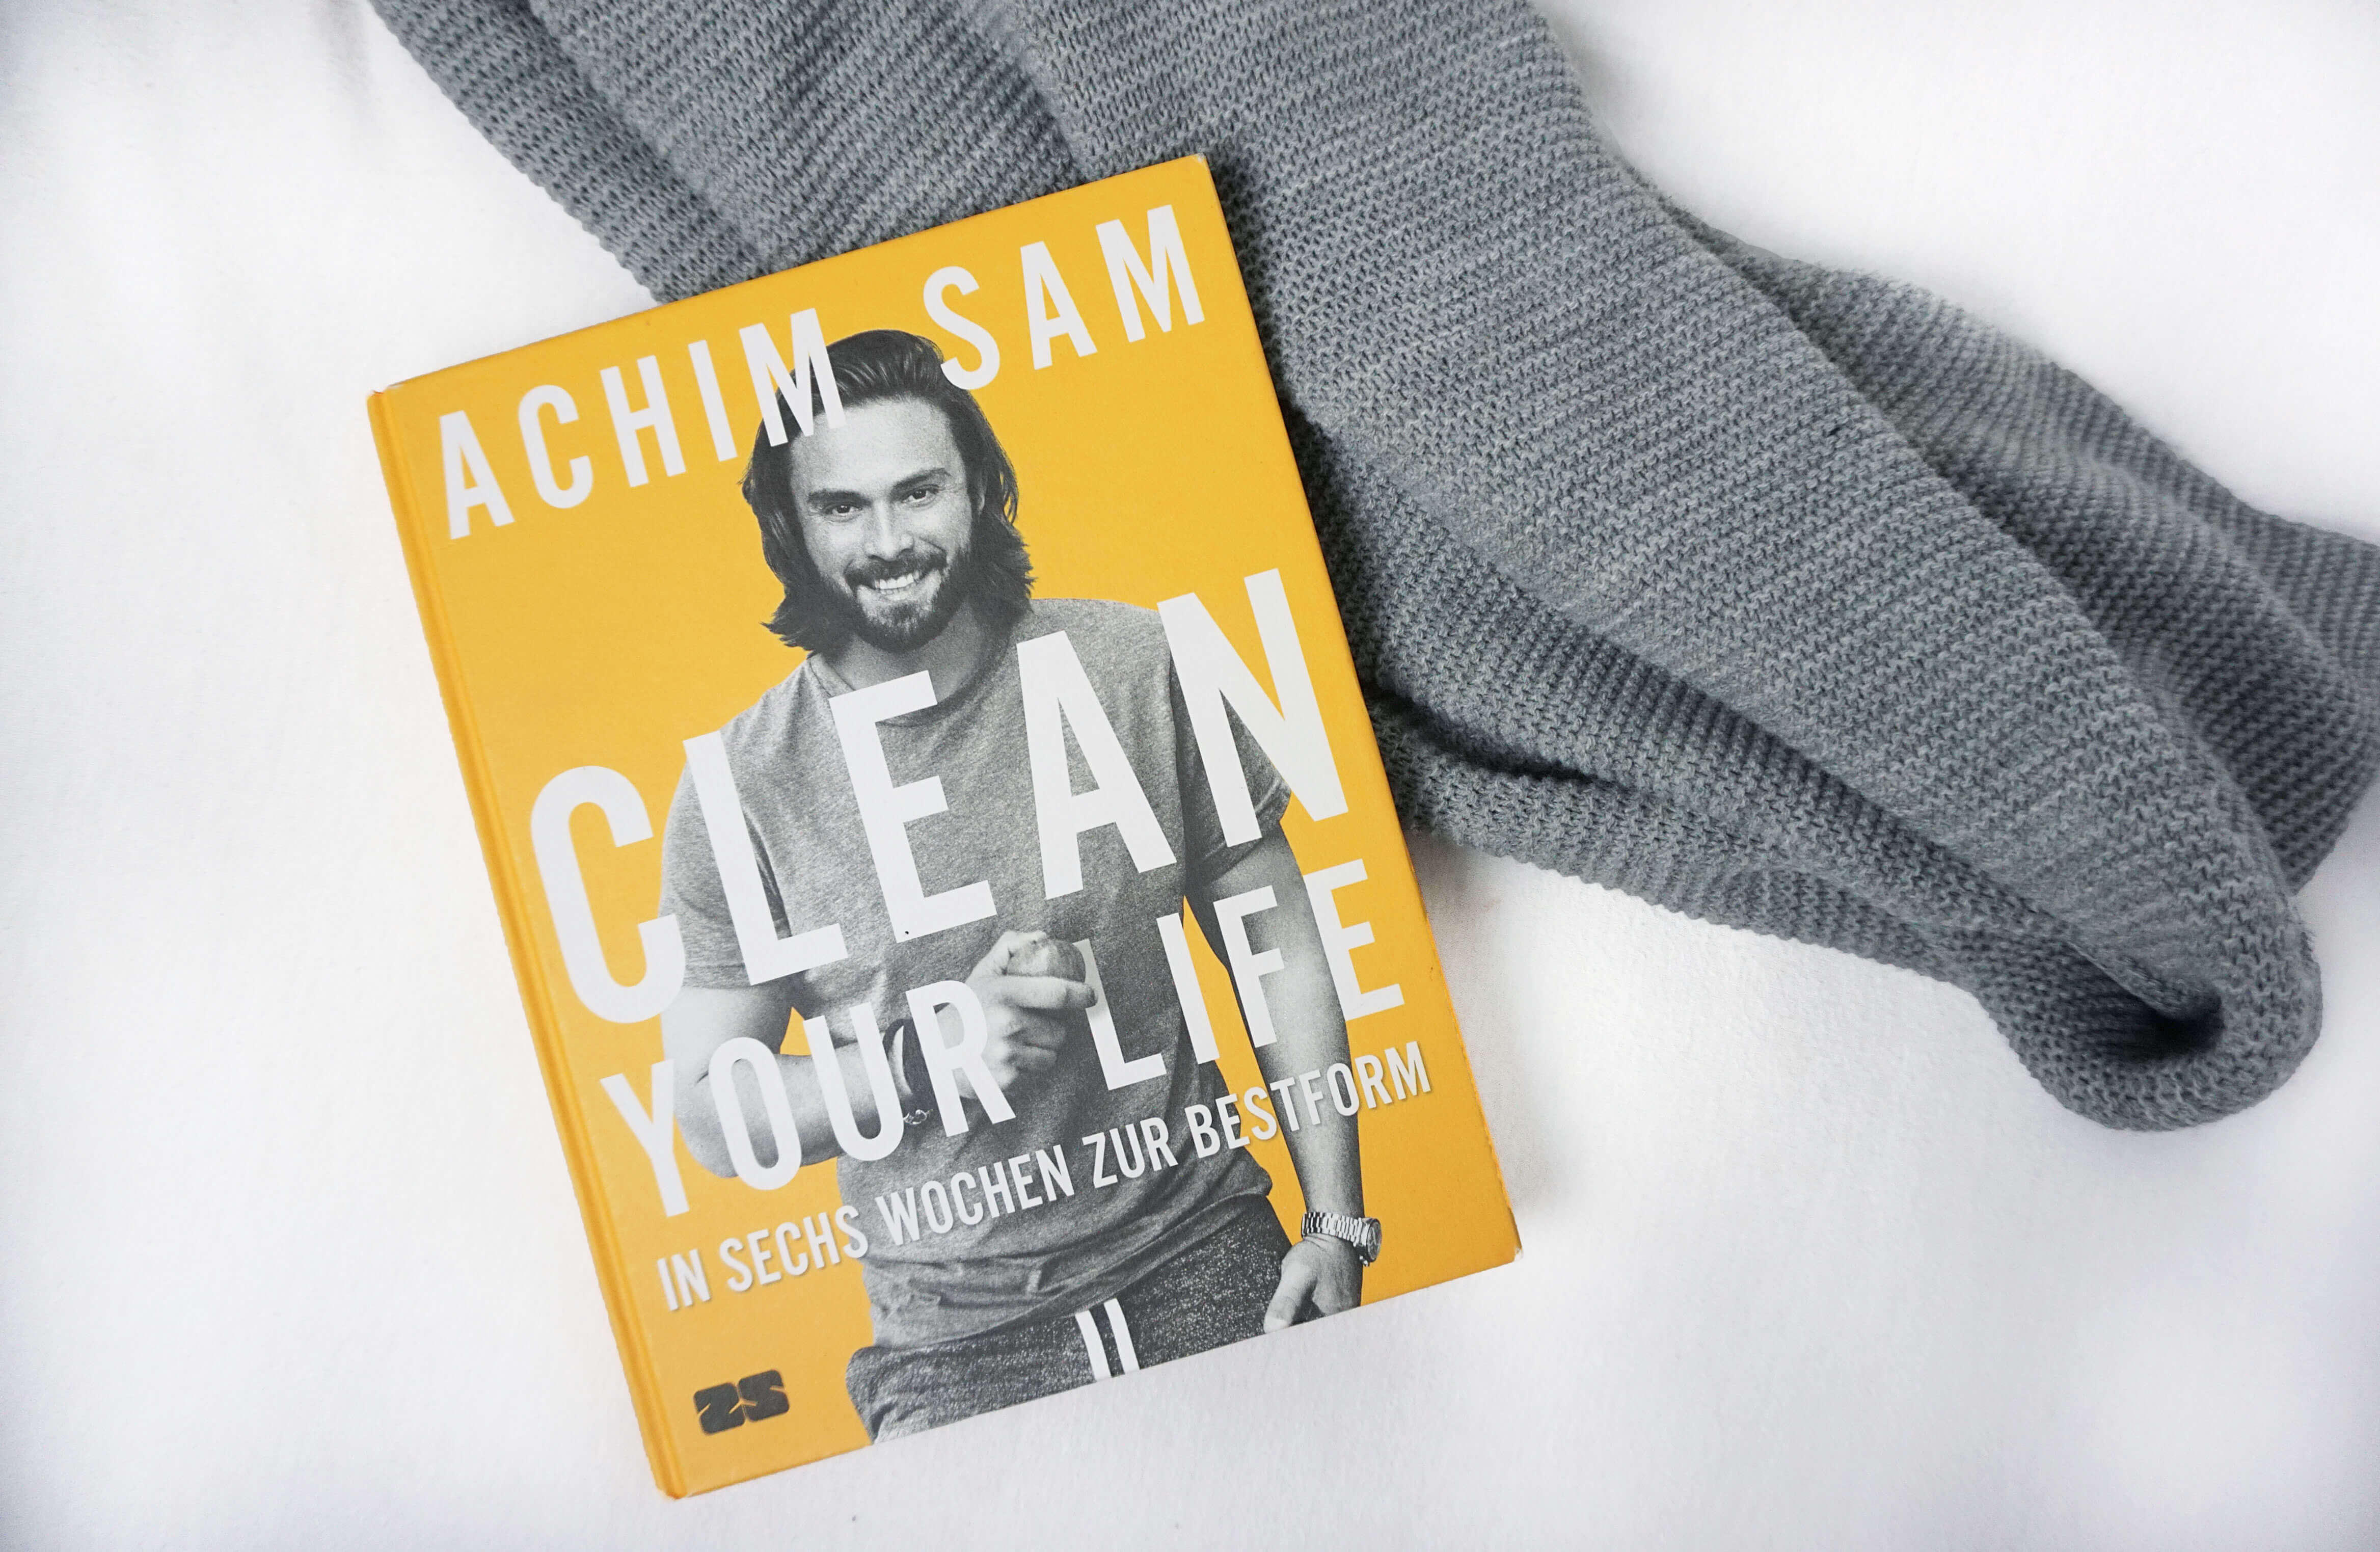 clean-your-life-buch-des-monats-november-achim-sam-fitfunfruits-1